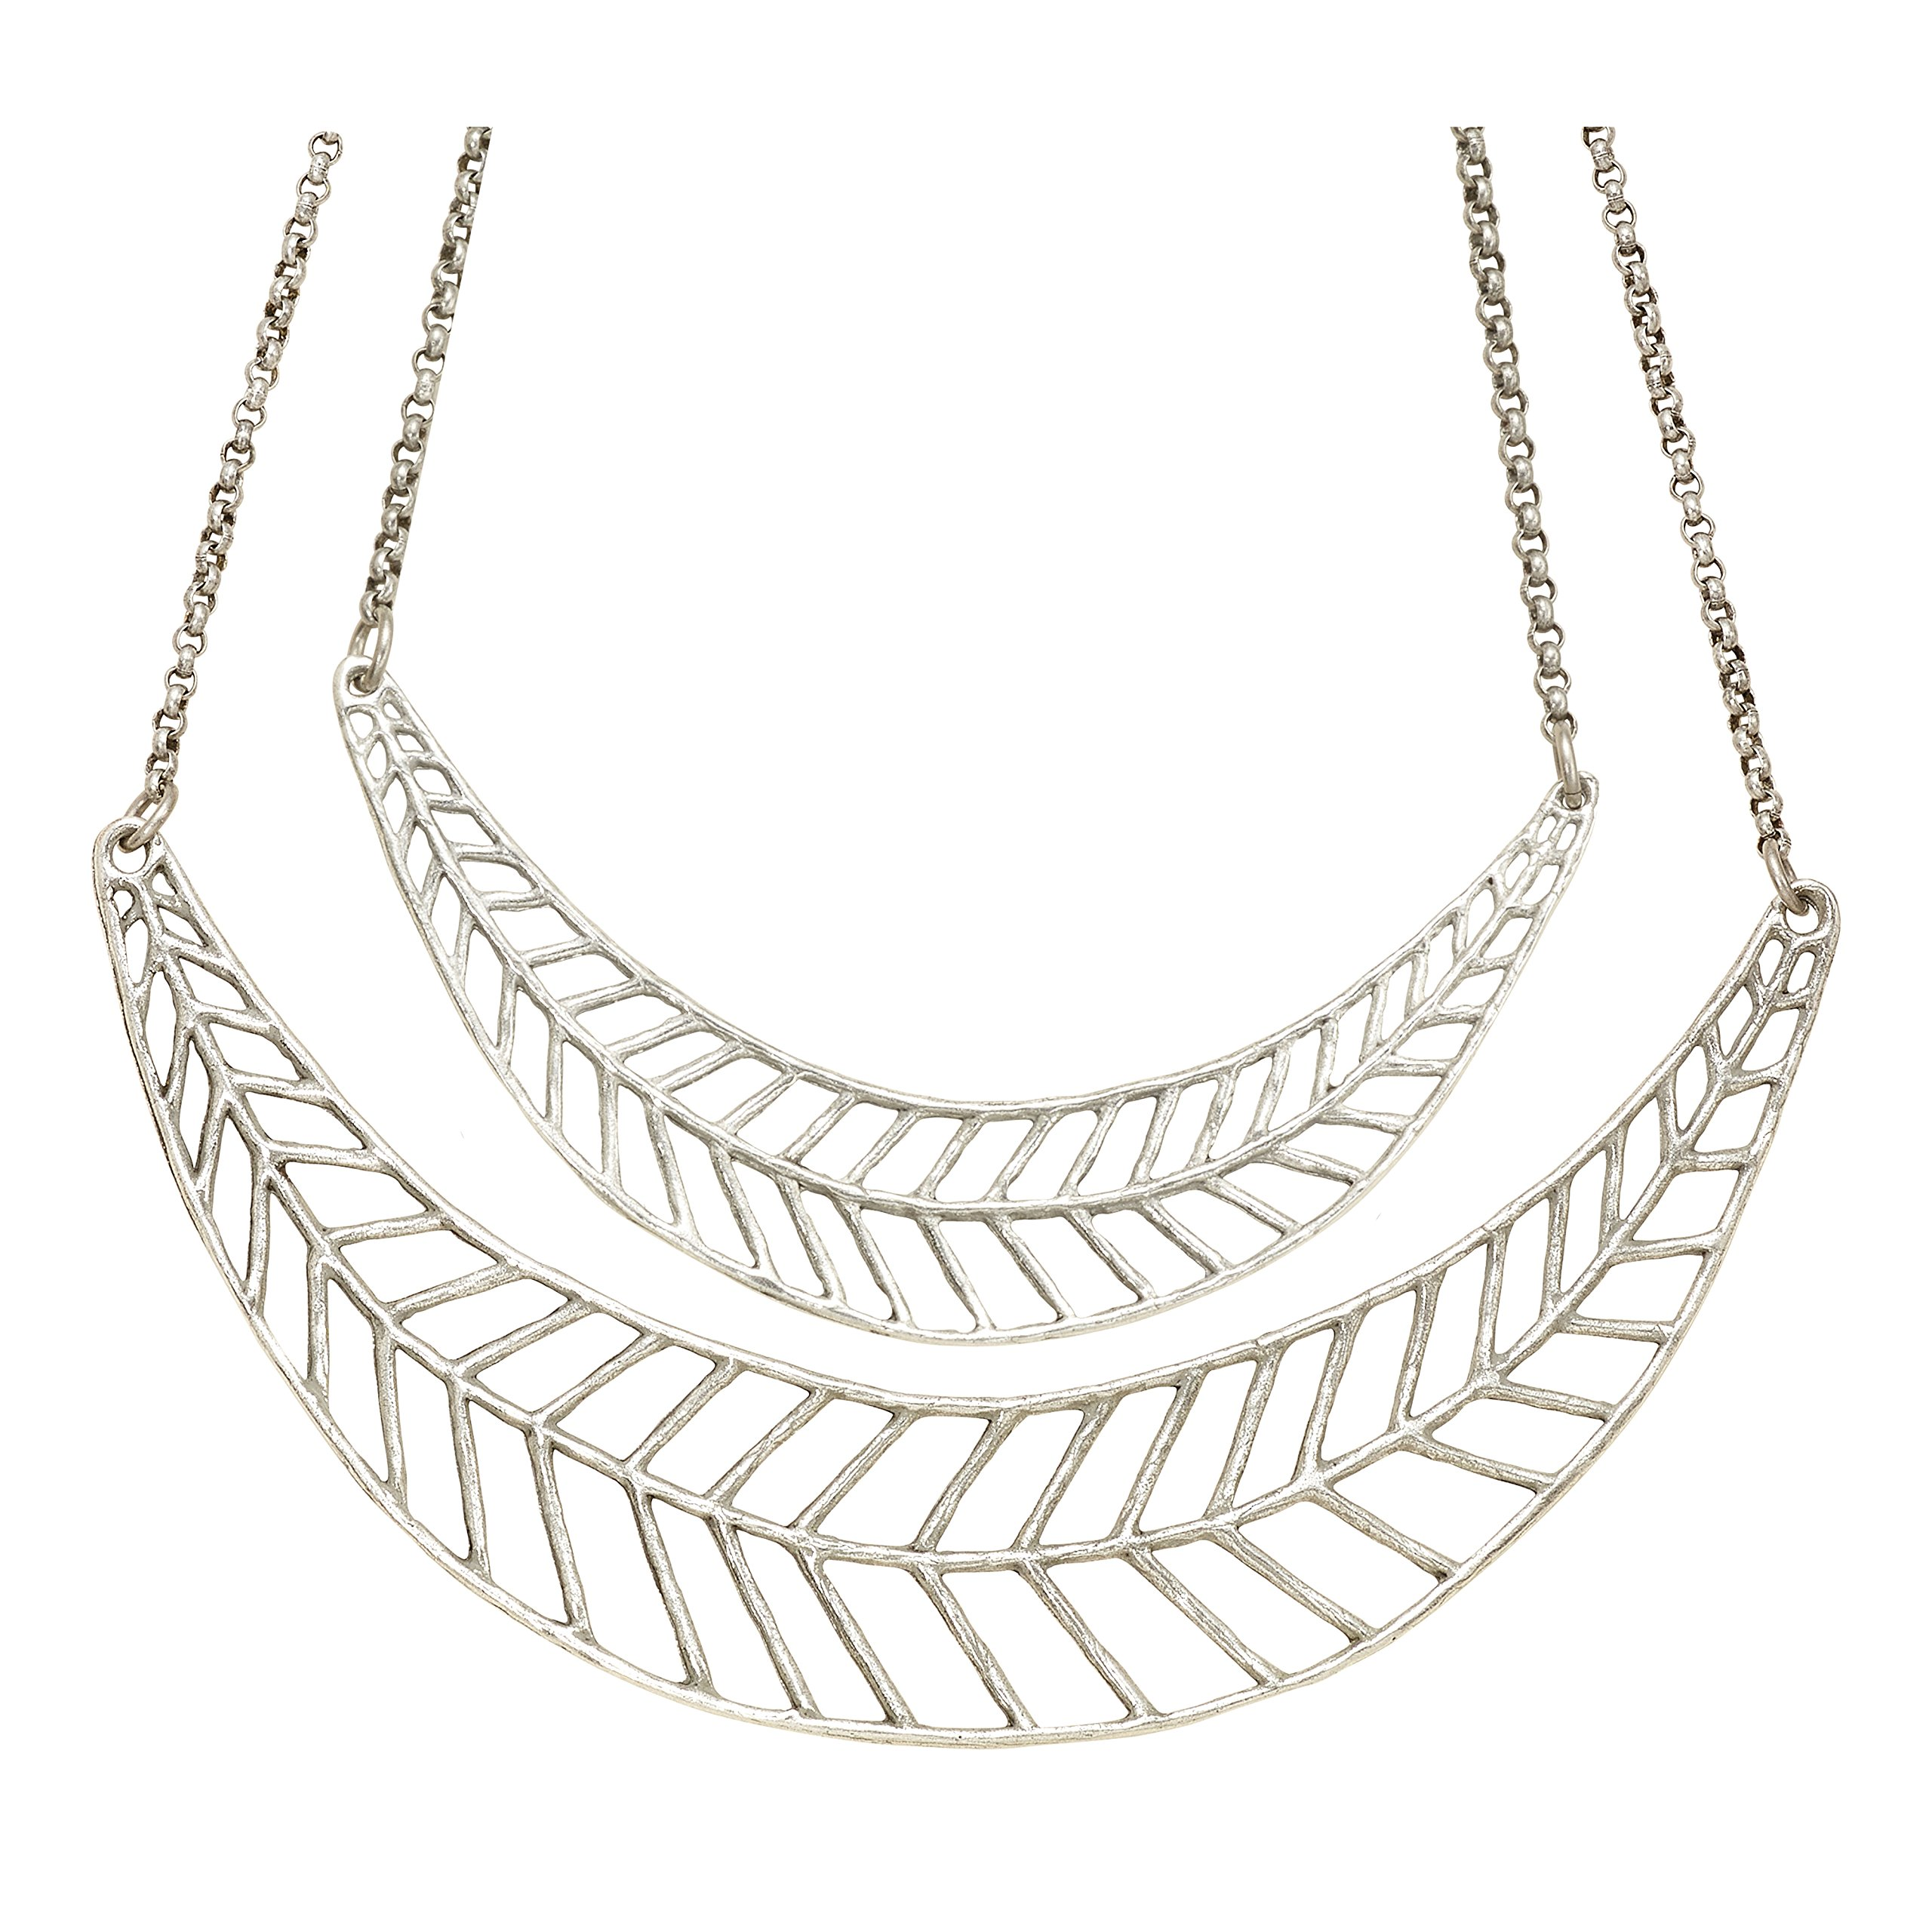 Chevron Leaf Double Collar Necklace (Antique Silver) by Mercedes Shaffer